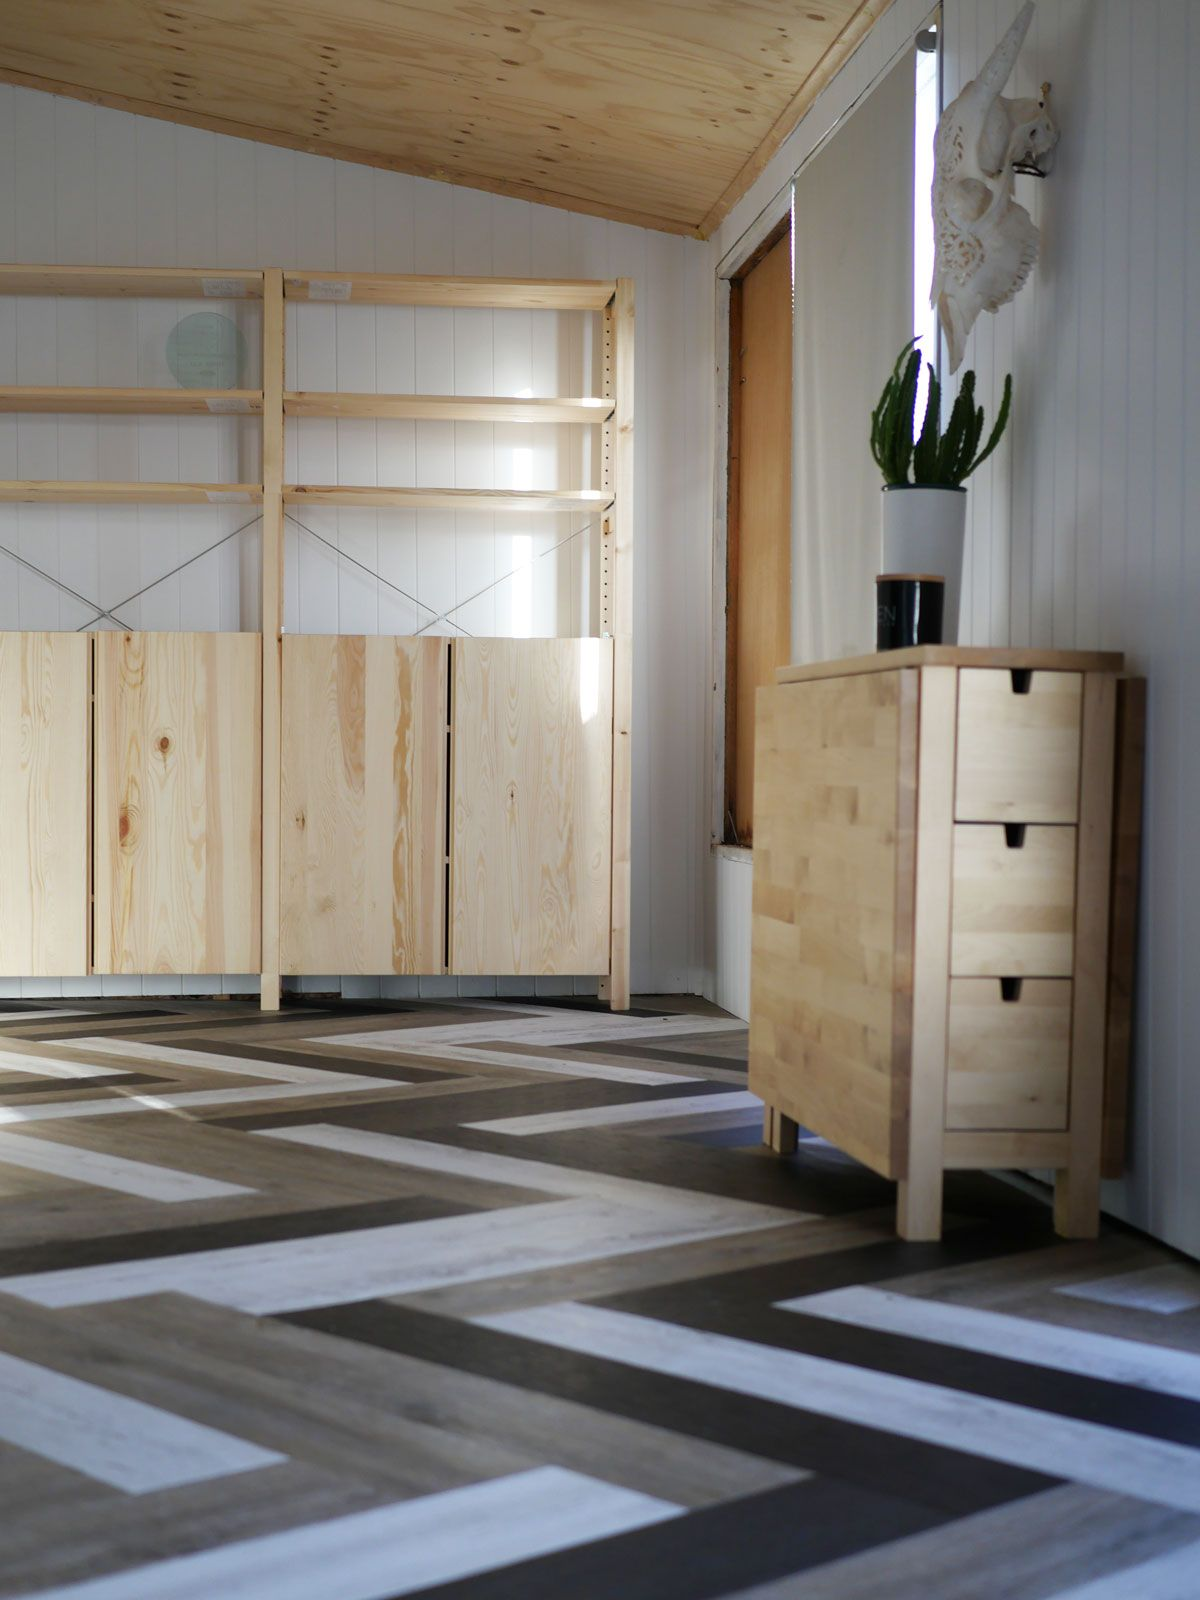 Herringbone Tile Floor Pattern